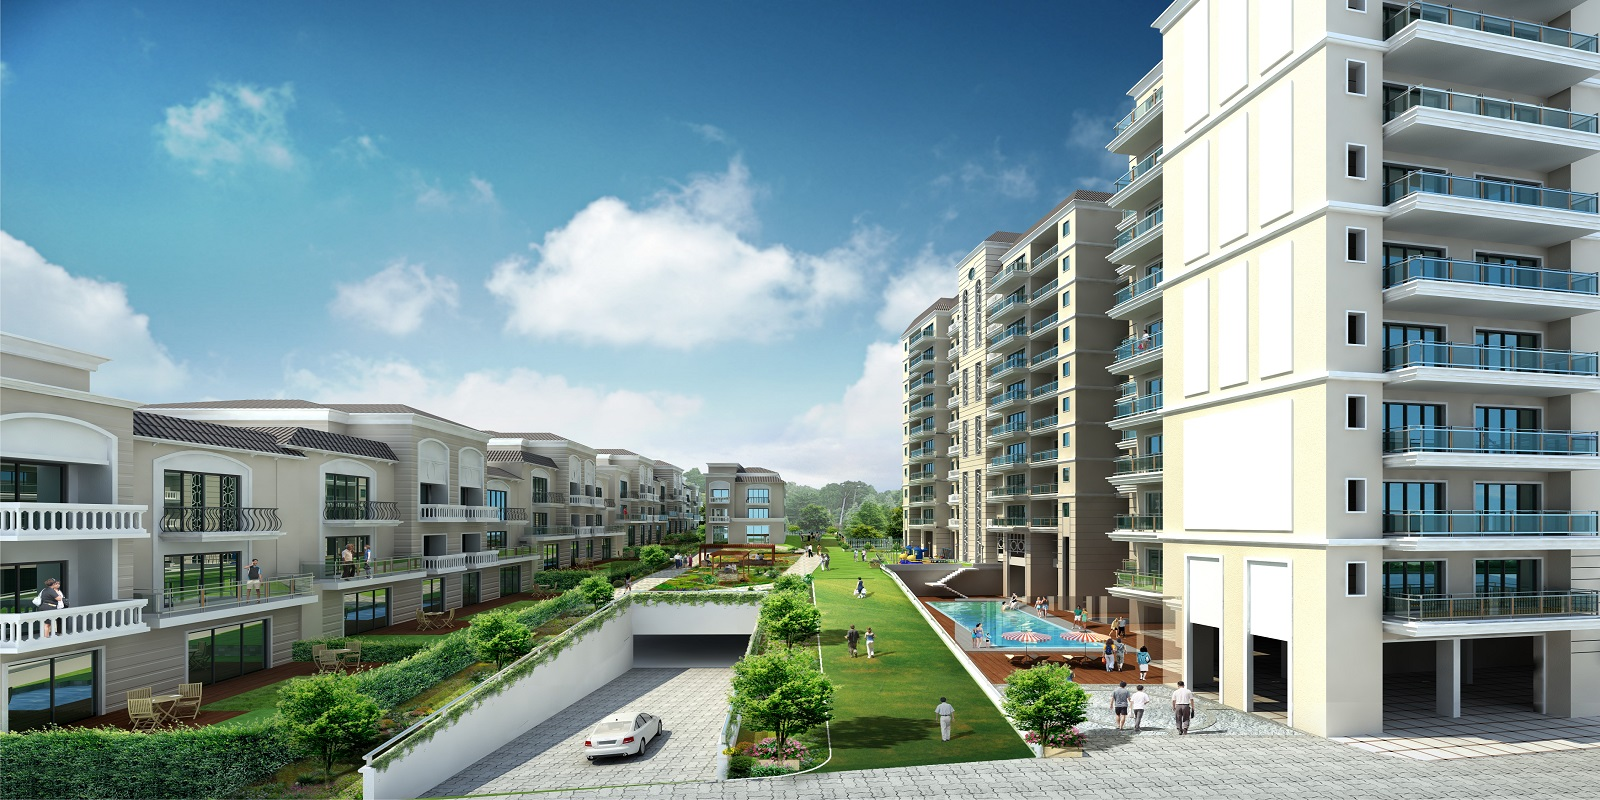 dlf kings court project large image1